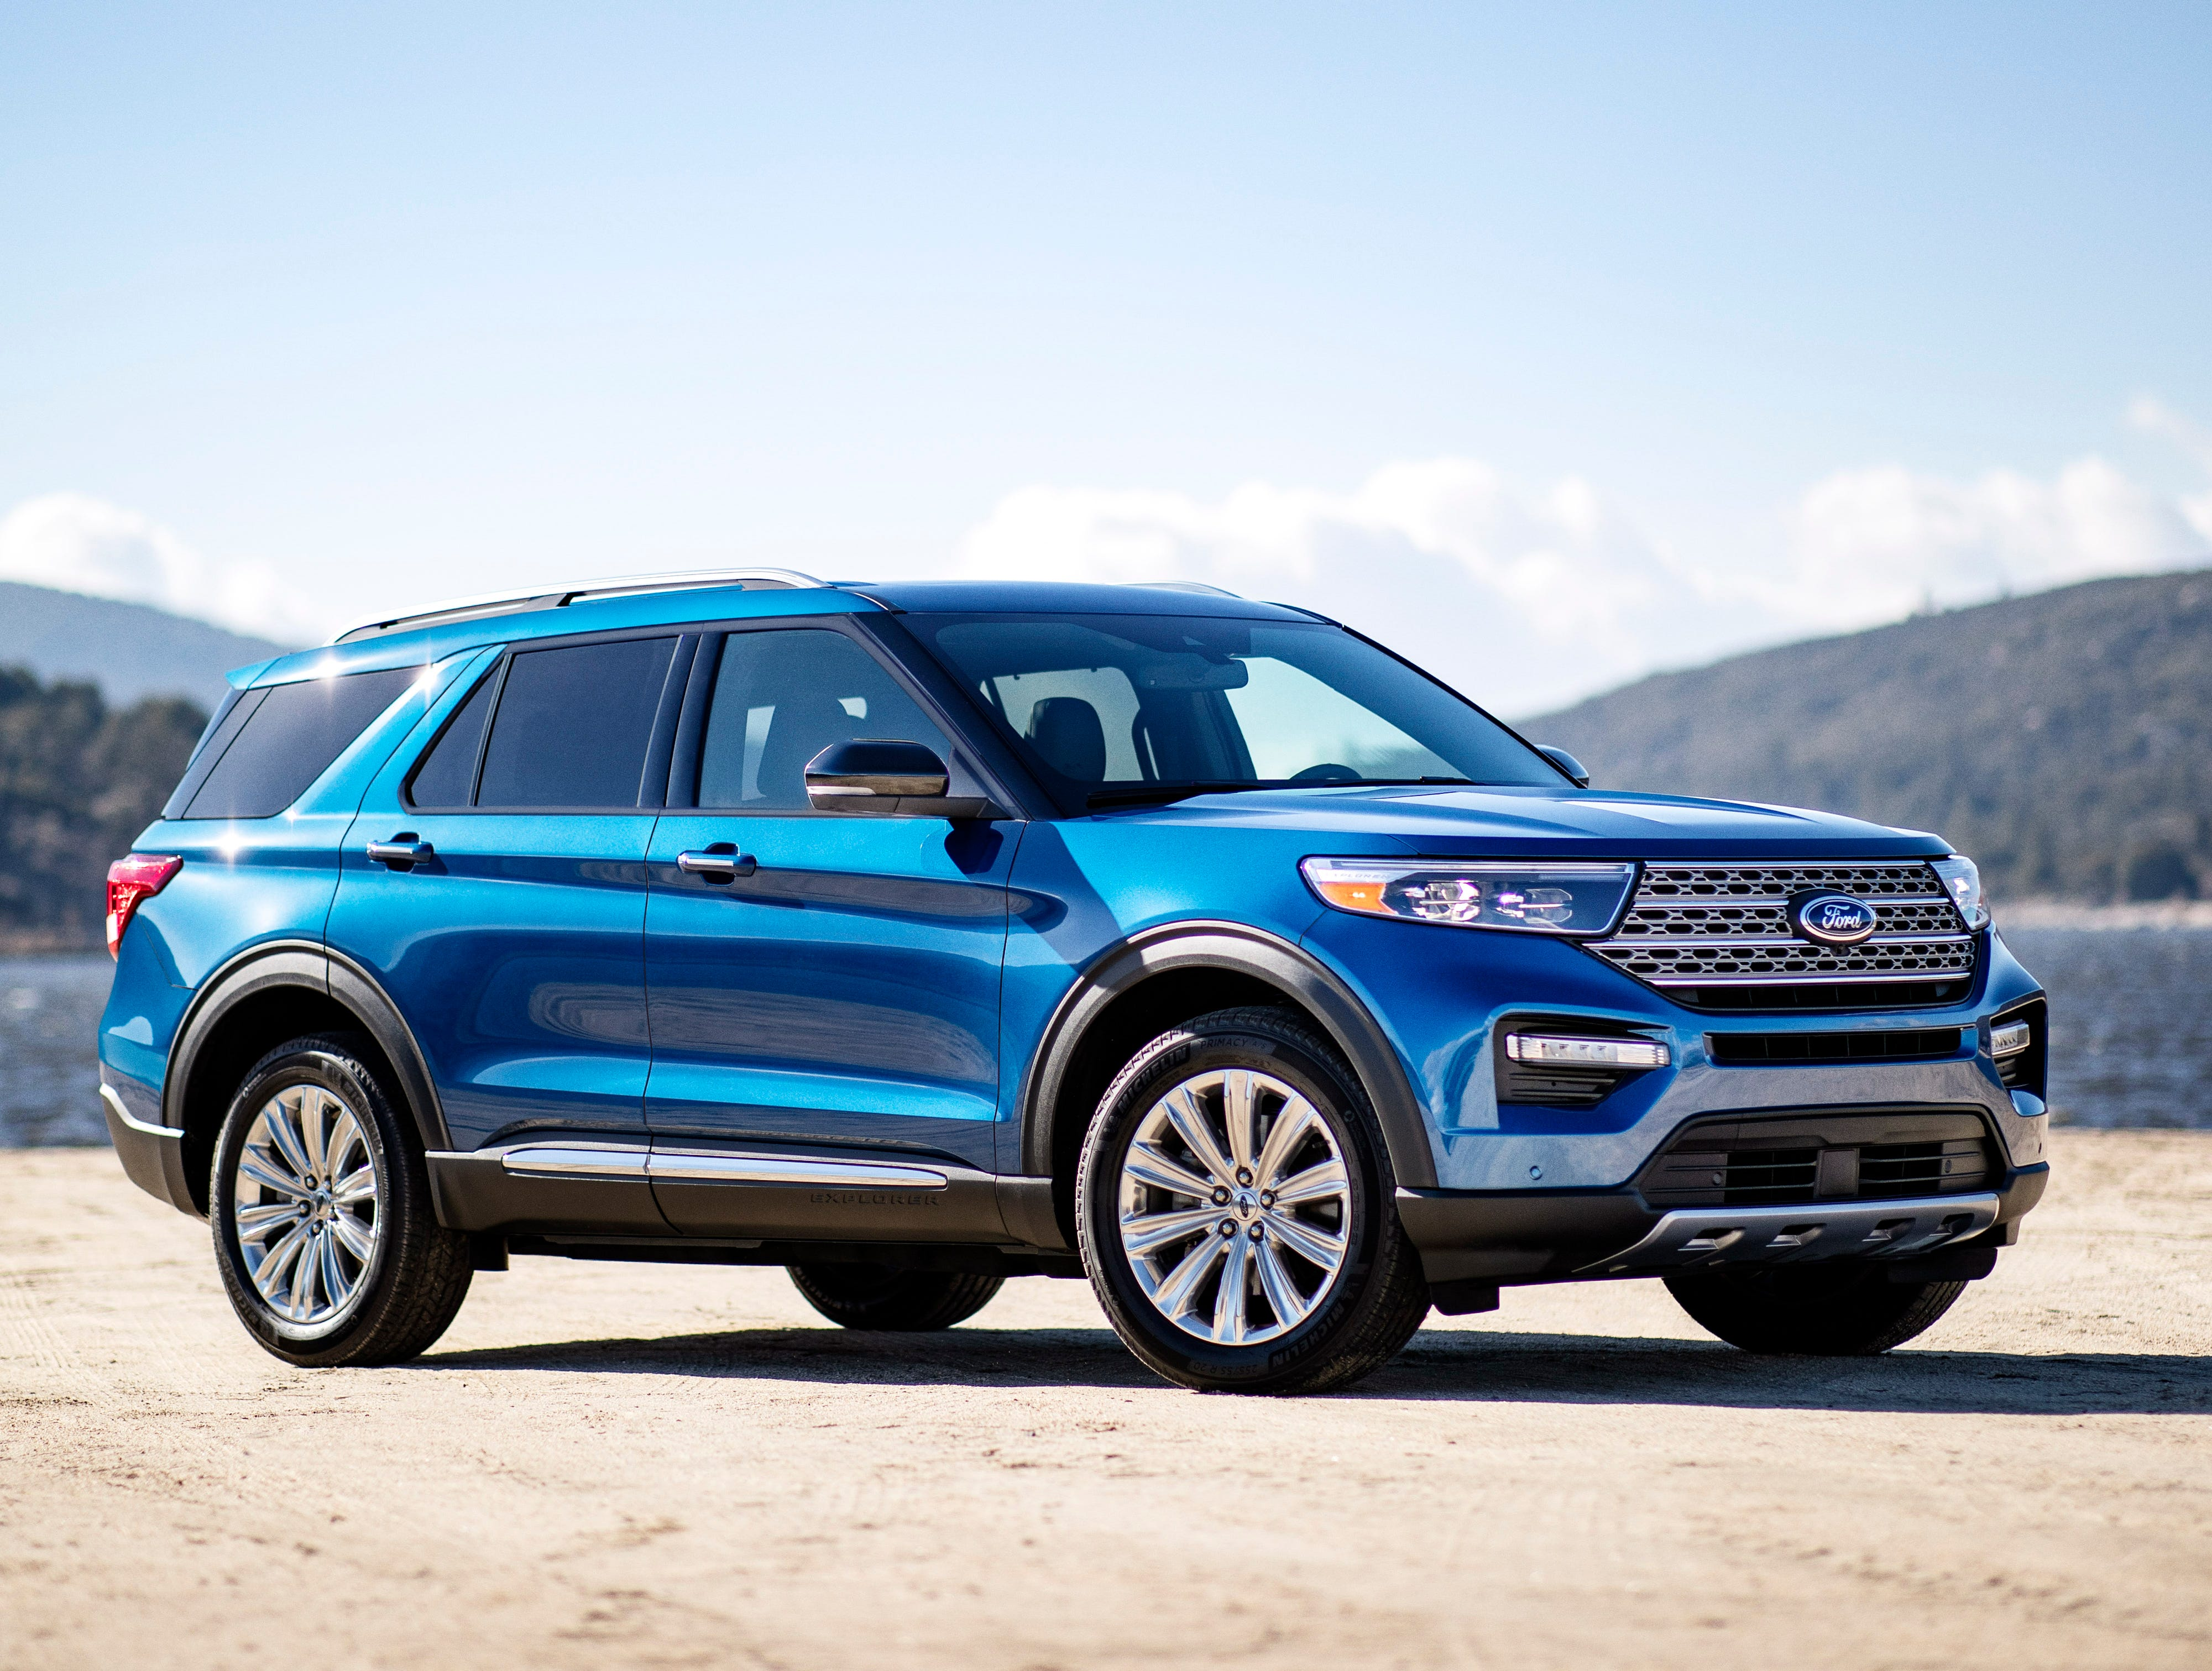 """""""The 2020 Ford Explorer Hybrid features a 3.3-liter hybrid powertrain, and is projected to produce a combined system 318 horsepower. An EPA-estimated range of more than 500 miles between gas station fill-ups is targeted for the rear-wheel-drive model."""""""